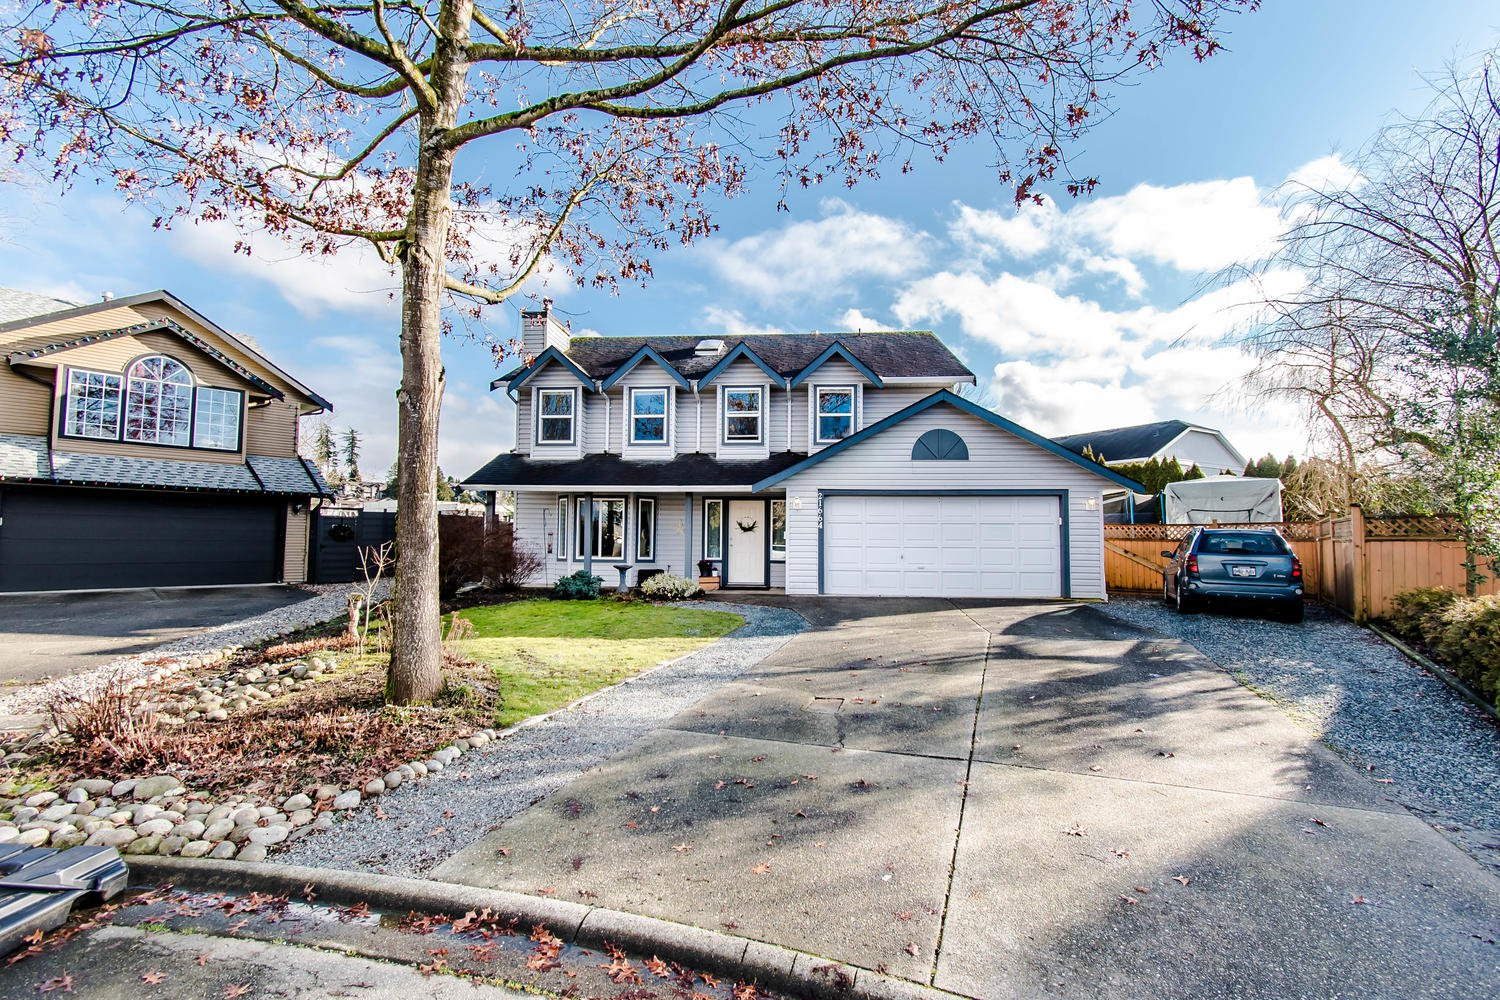 """Main Photo: 21664 50B Avenue in Langley: Murrayville House for sale in """"MURRAYVILLE"""" : MLS®# R2432446"""